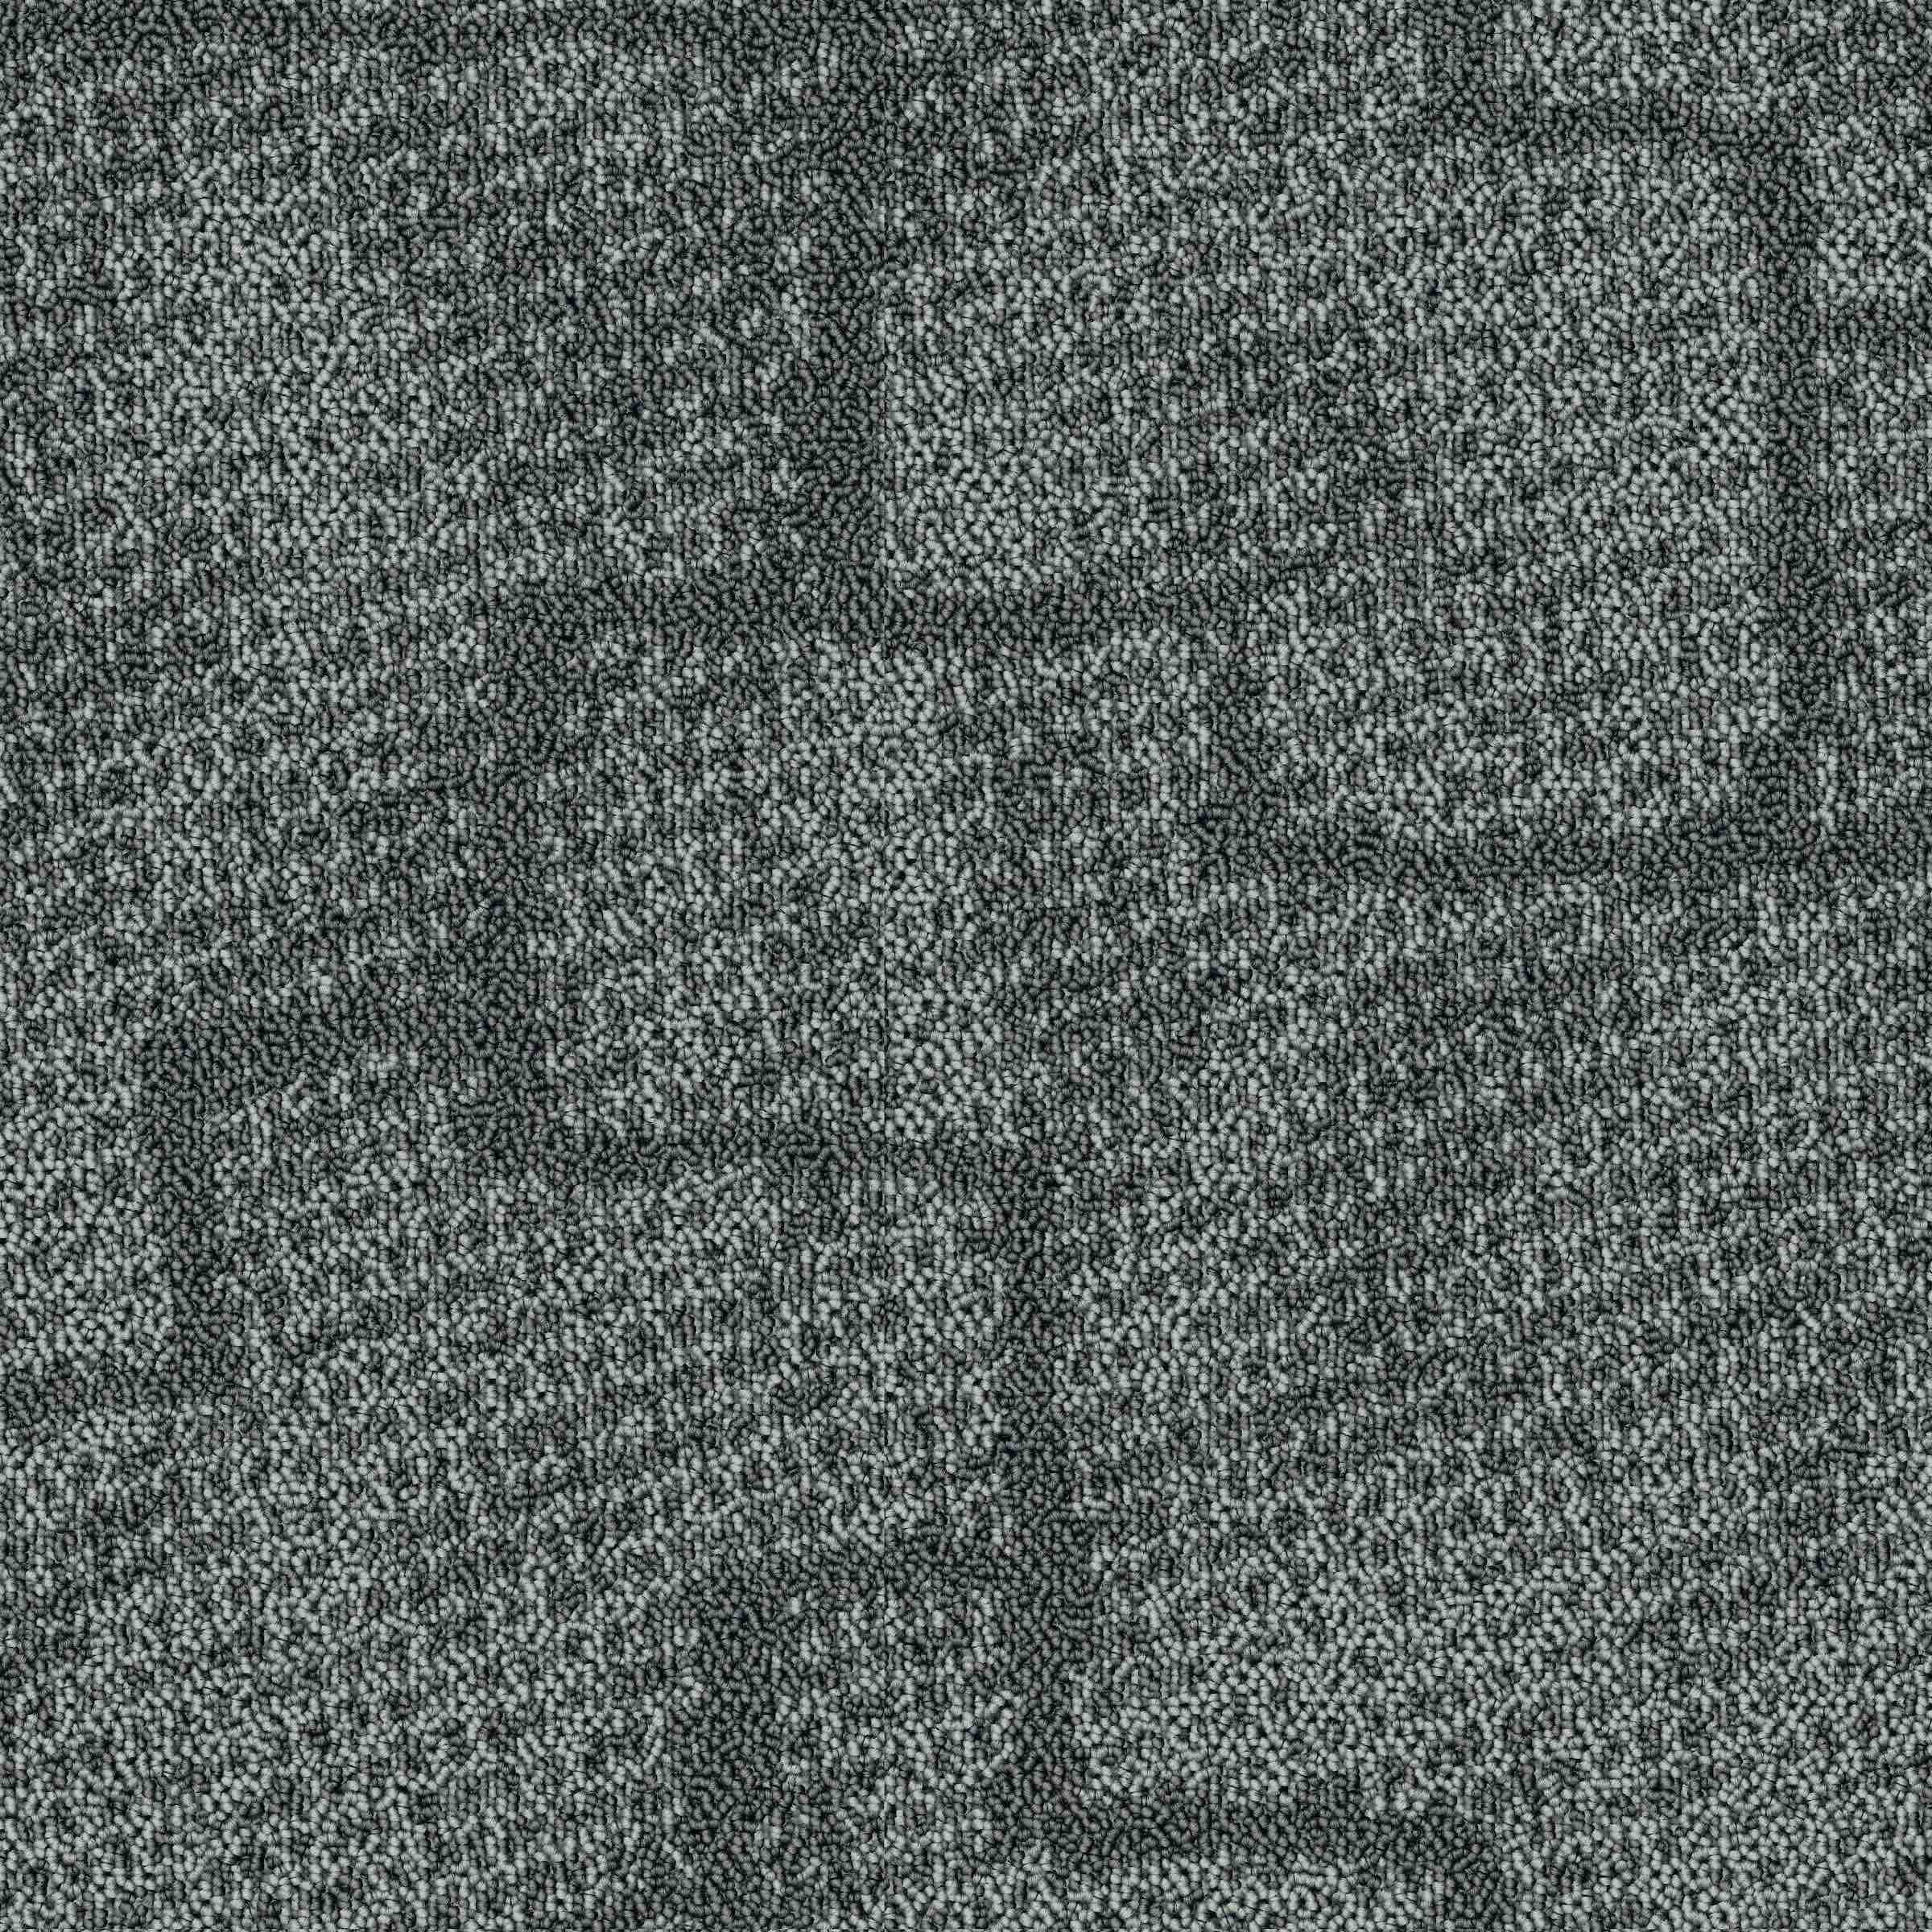 Mesh | Obsidian Flash | Paragon Carpet Tiles | Commercial Carpet Tiles